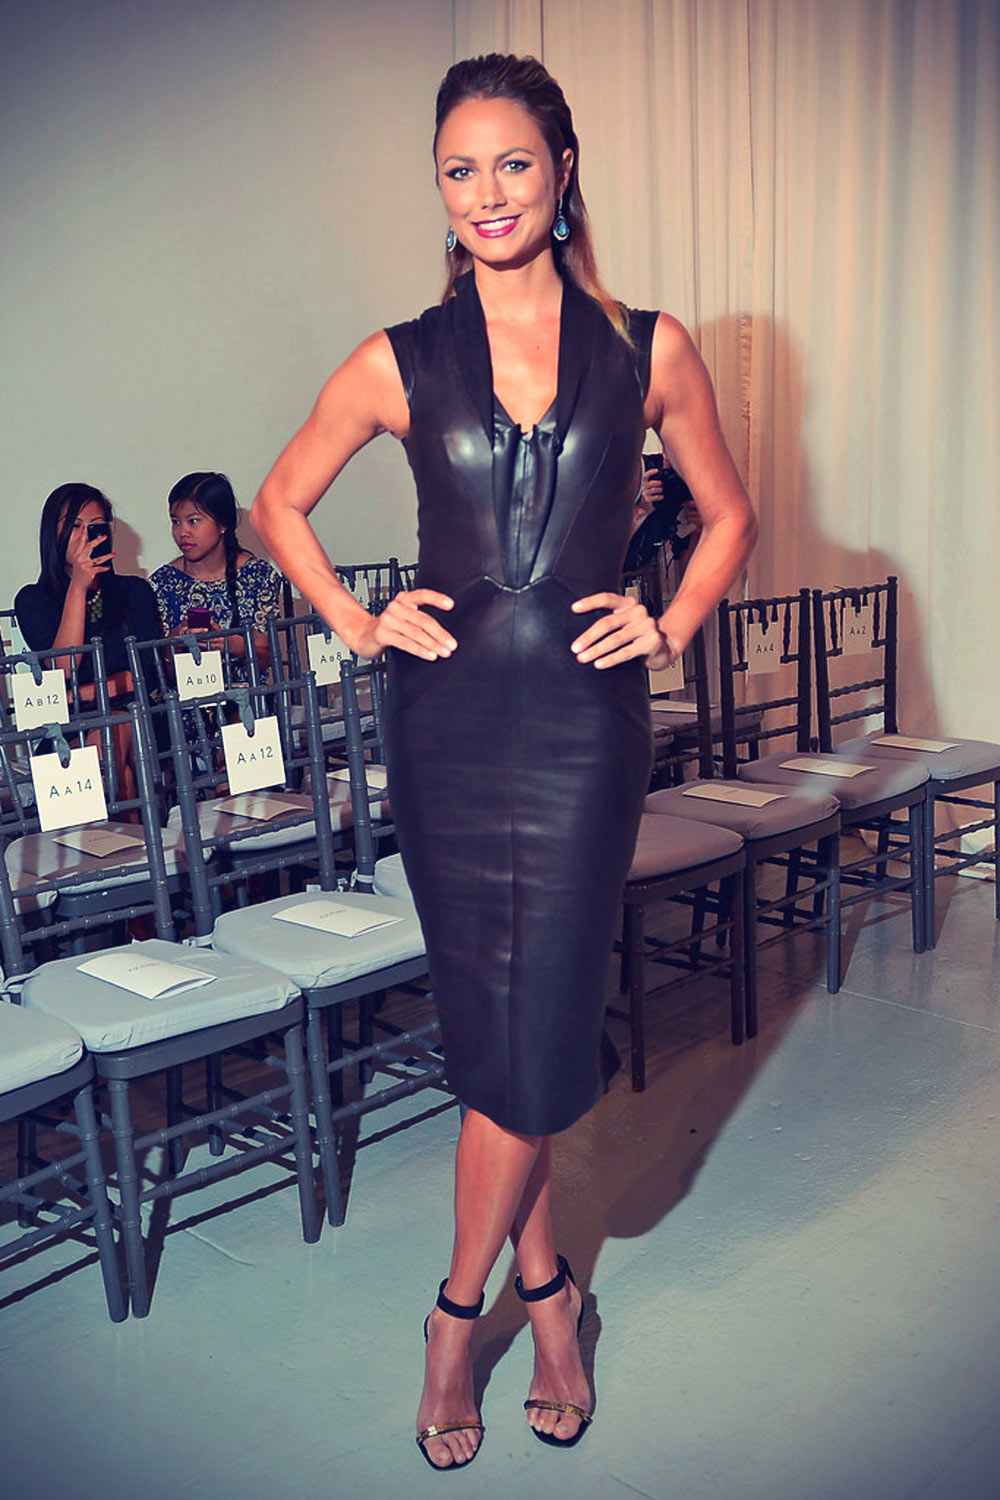 cocorocha_Stacy Keibler attends Zac Posen Fashion Show - Leather Celebrities